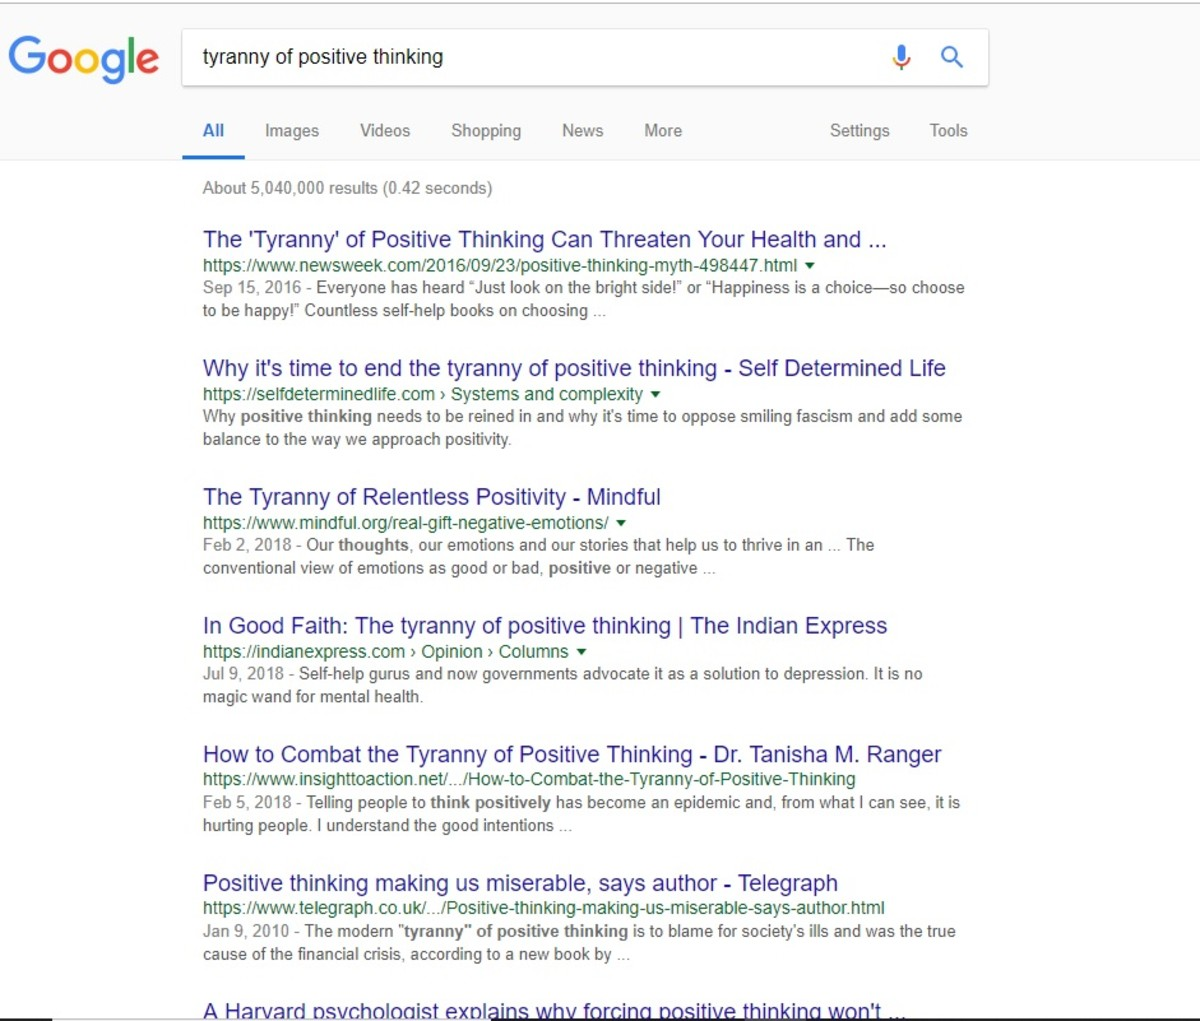 Over 5000,000 results